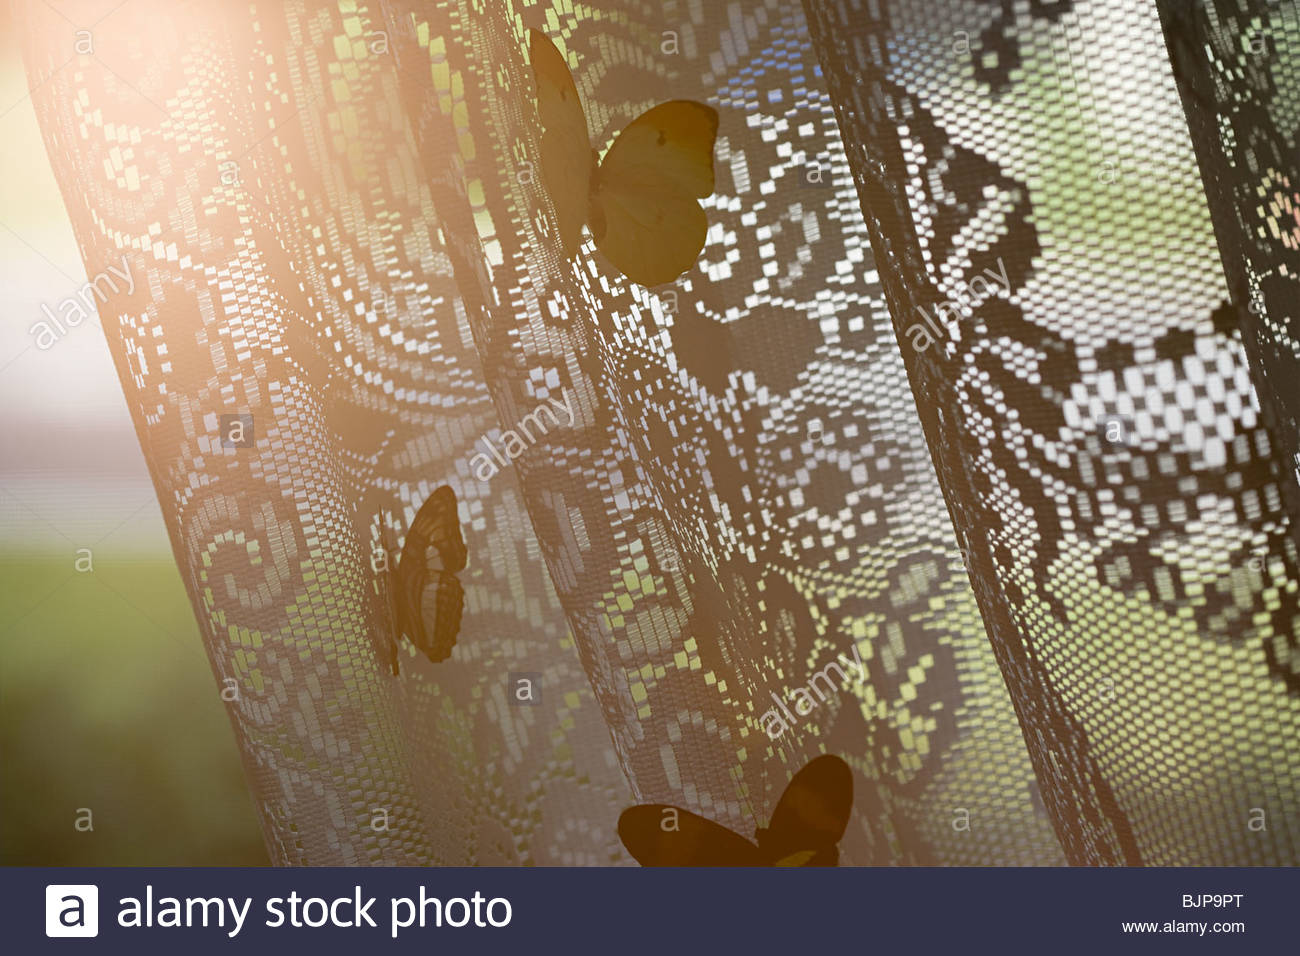 Butterflies on net curtain - Stock Image